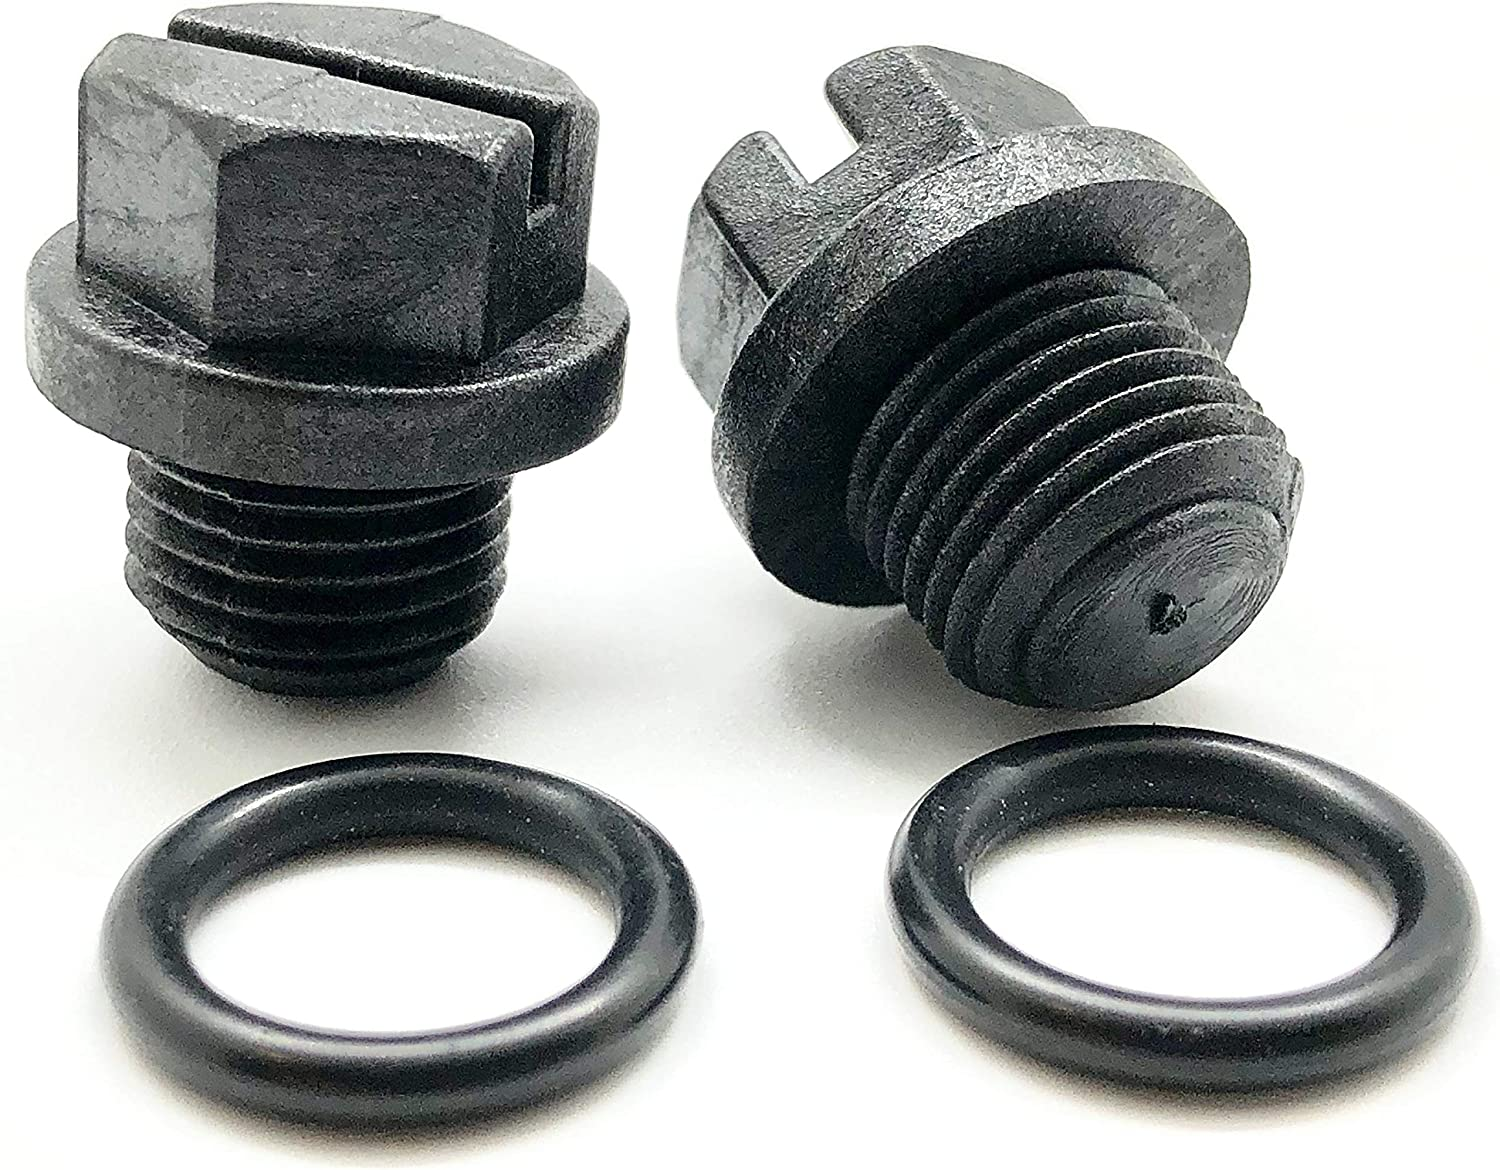 poolrcfilters 2 pak Replacements Hayward SPX1700FG Pipe Plug with Gasket Replacement for Select Hayward Pumps